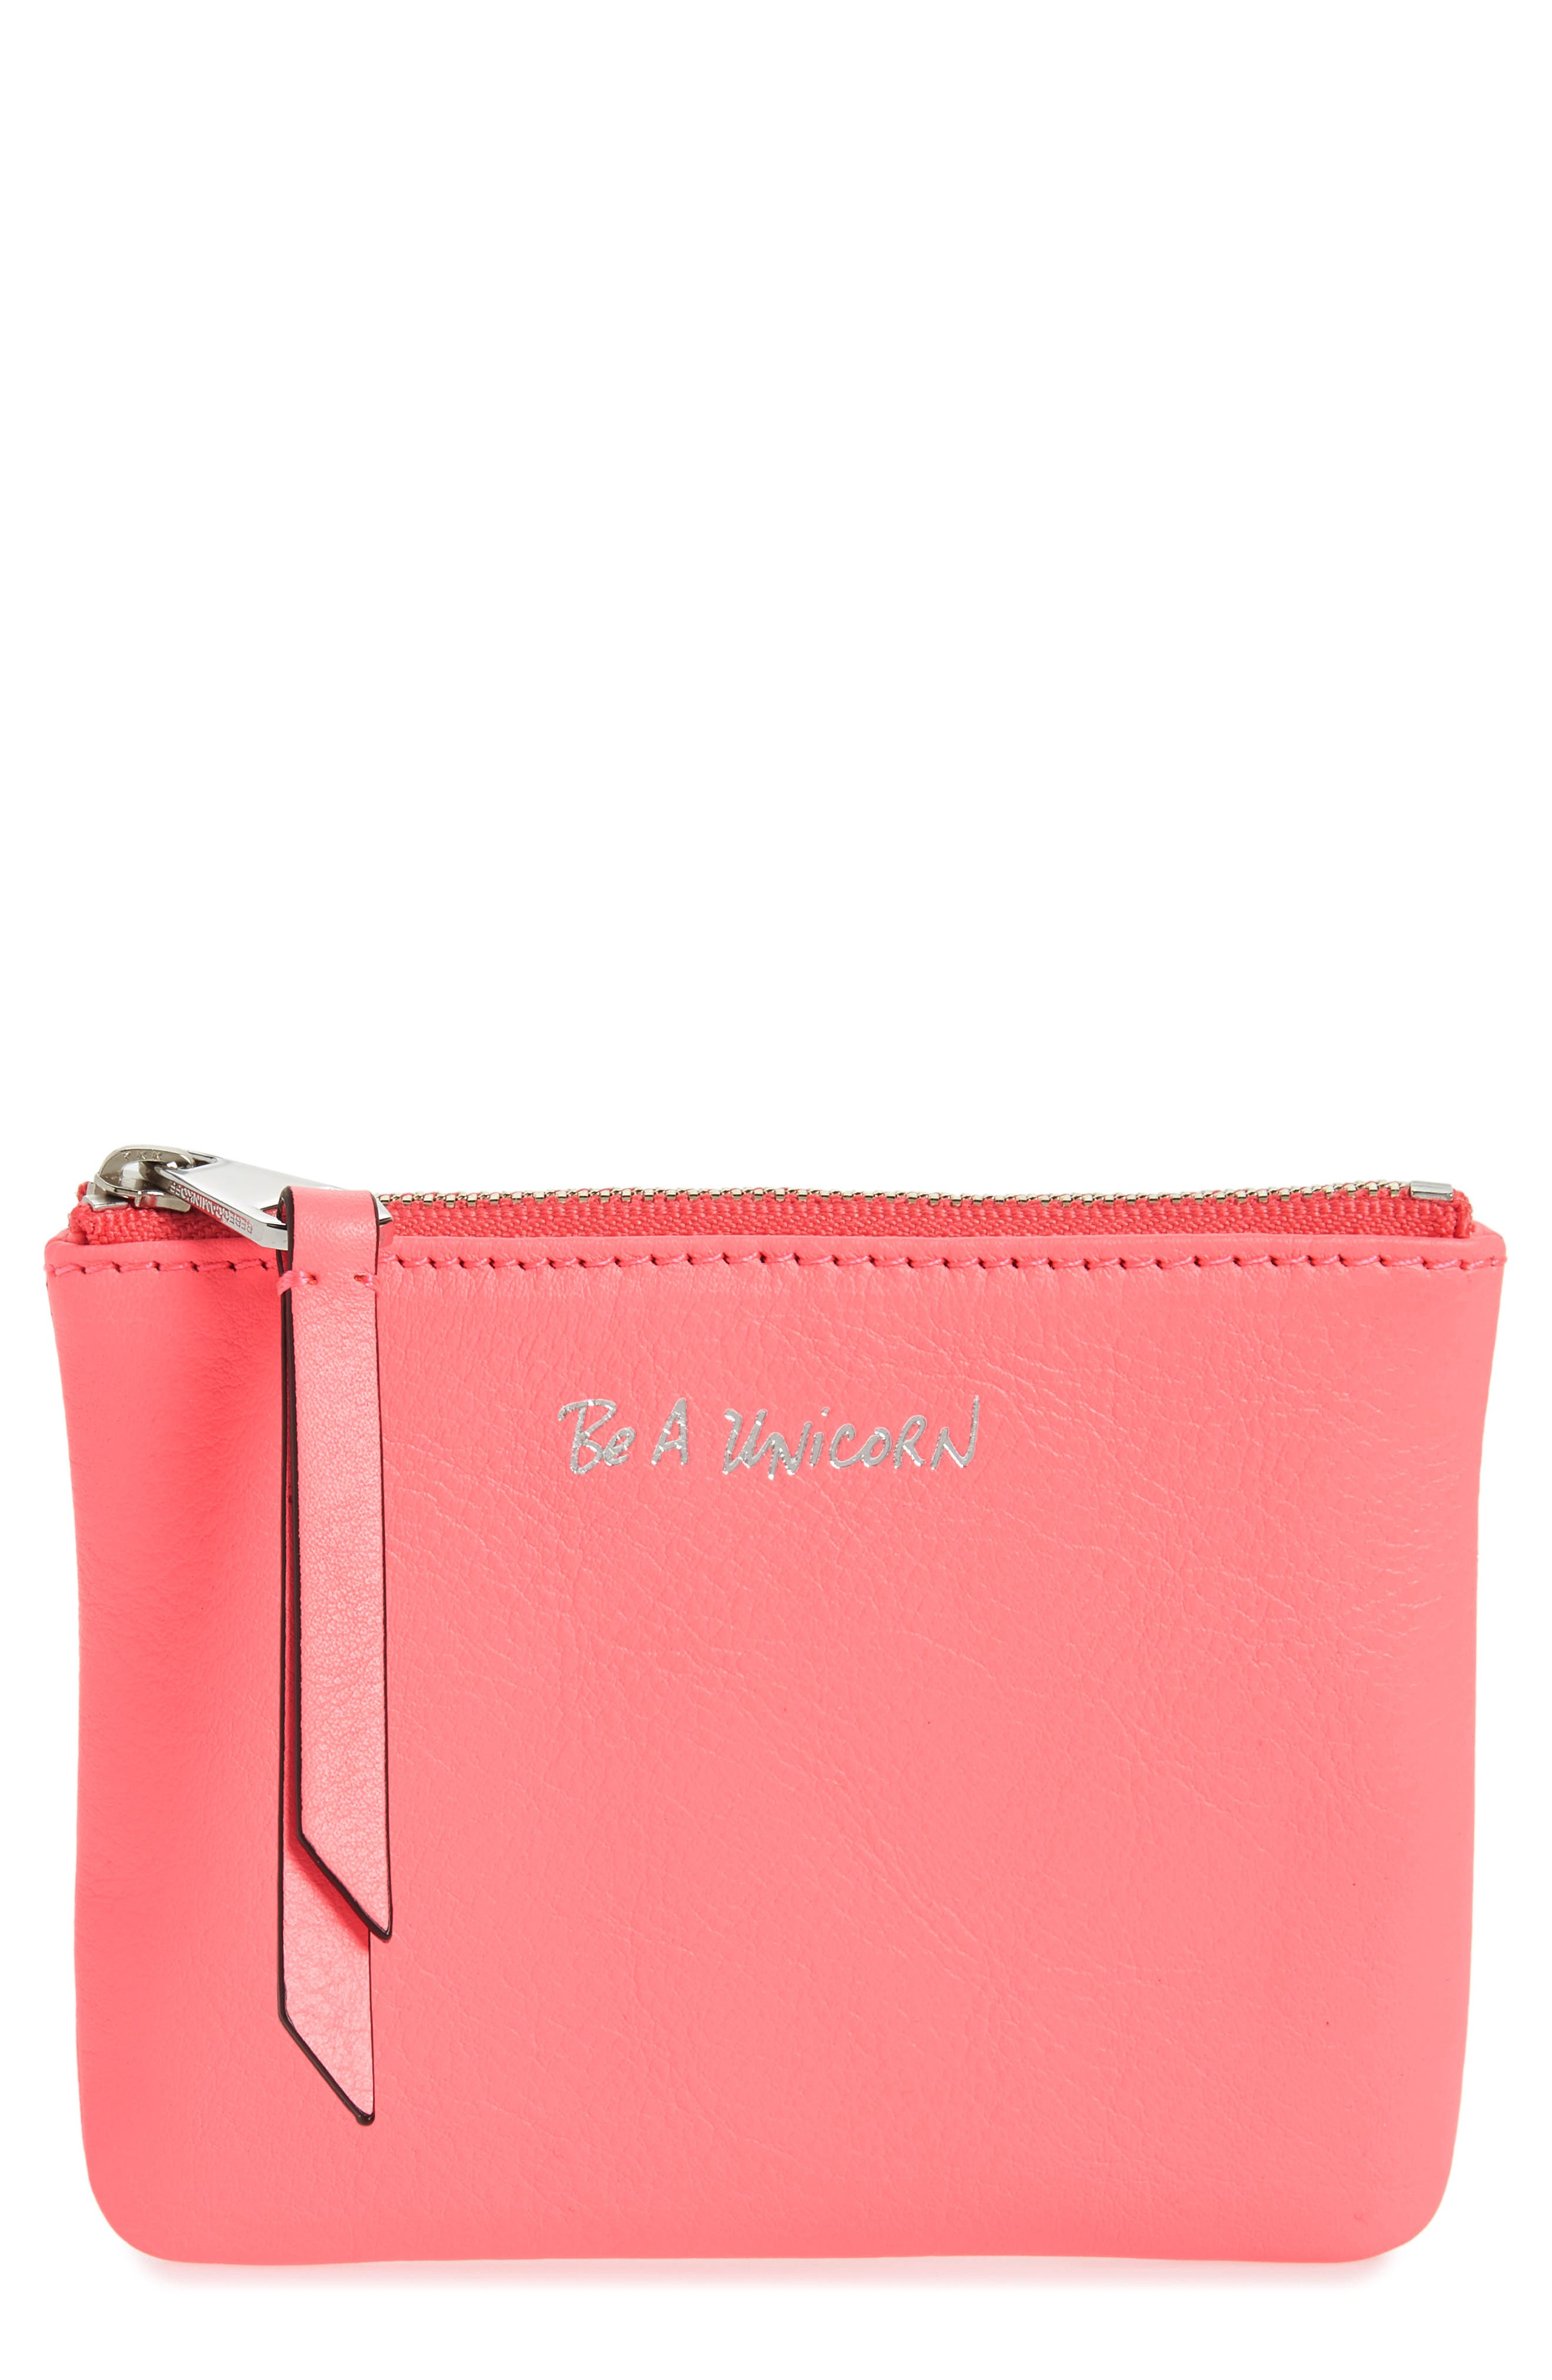 Betty - Be a Unicorn Leather Pouch,                             Main thumbnail 1, color,                             Neon Pink